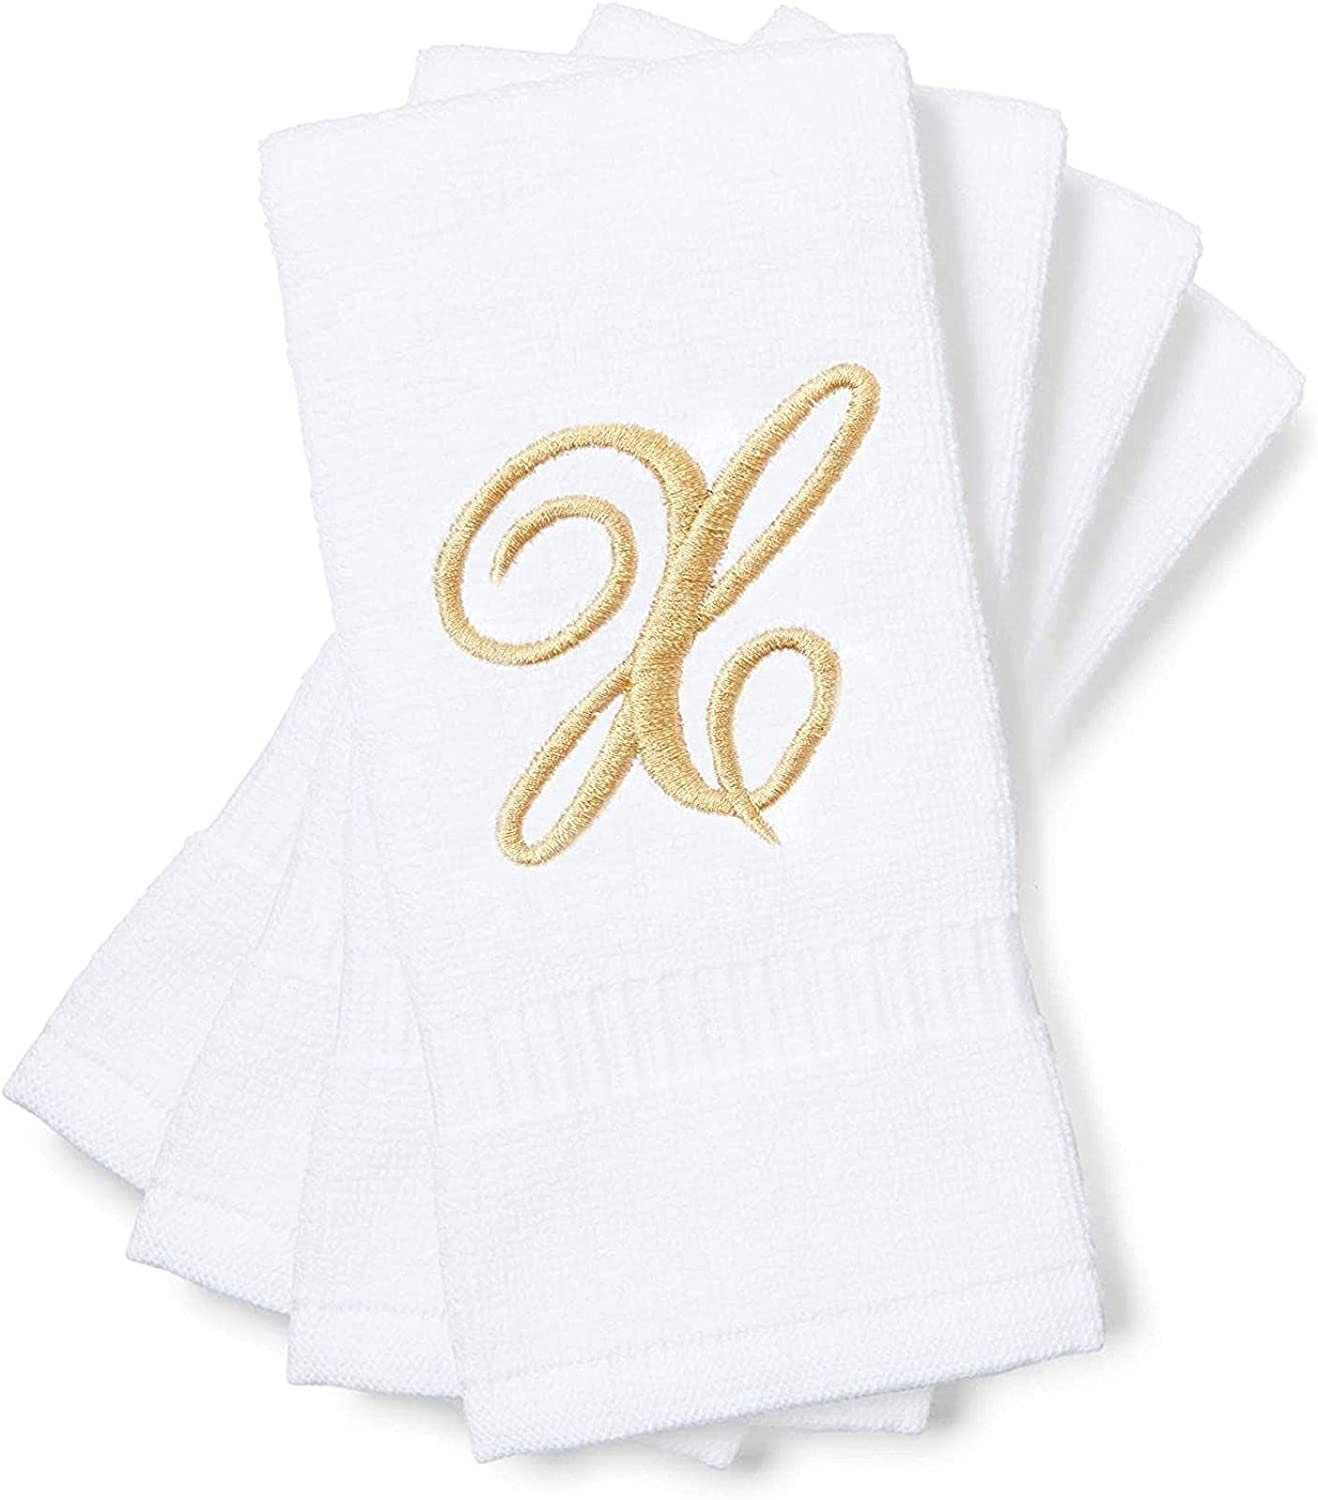 Monogrammed Trust Fingertip Towels Letter X Gift Embroidered New Shipping Free 18 11 x